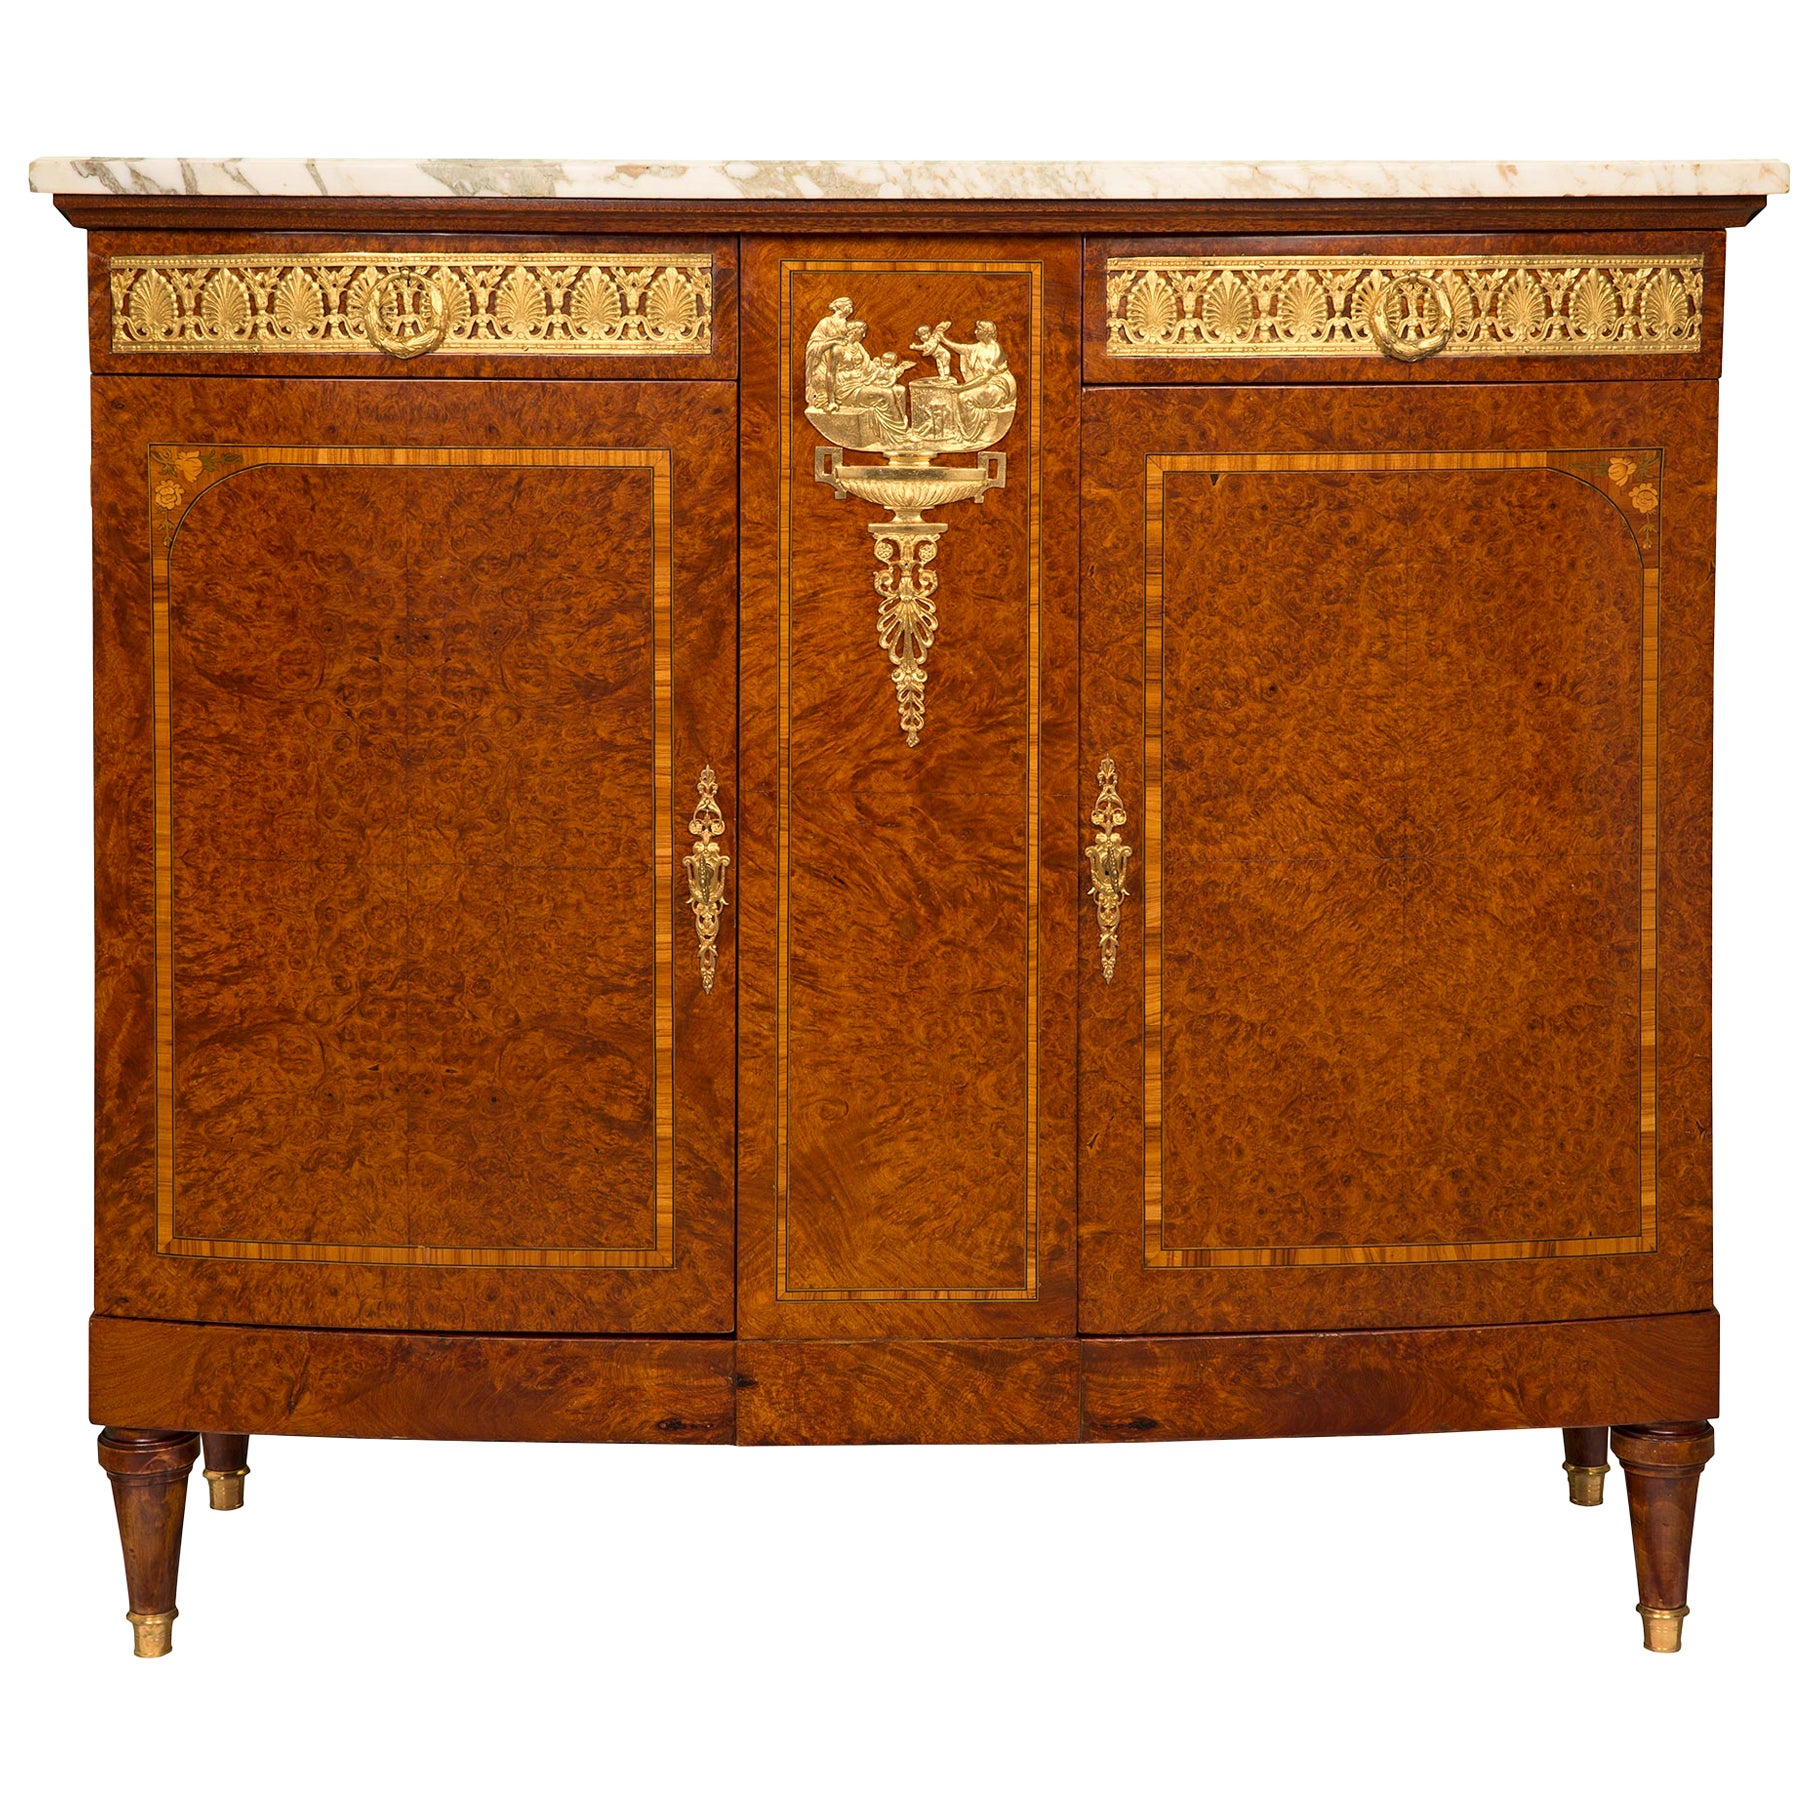 French 19th Century Neoclassical Style Burl Walnut, Tulipwood and Ormolu Buffet